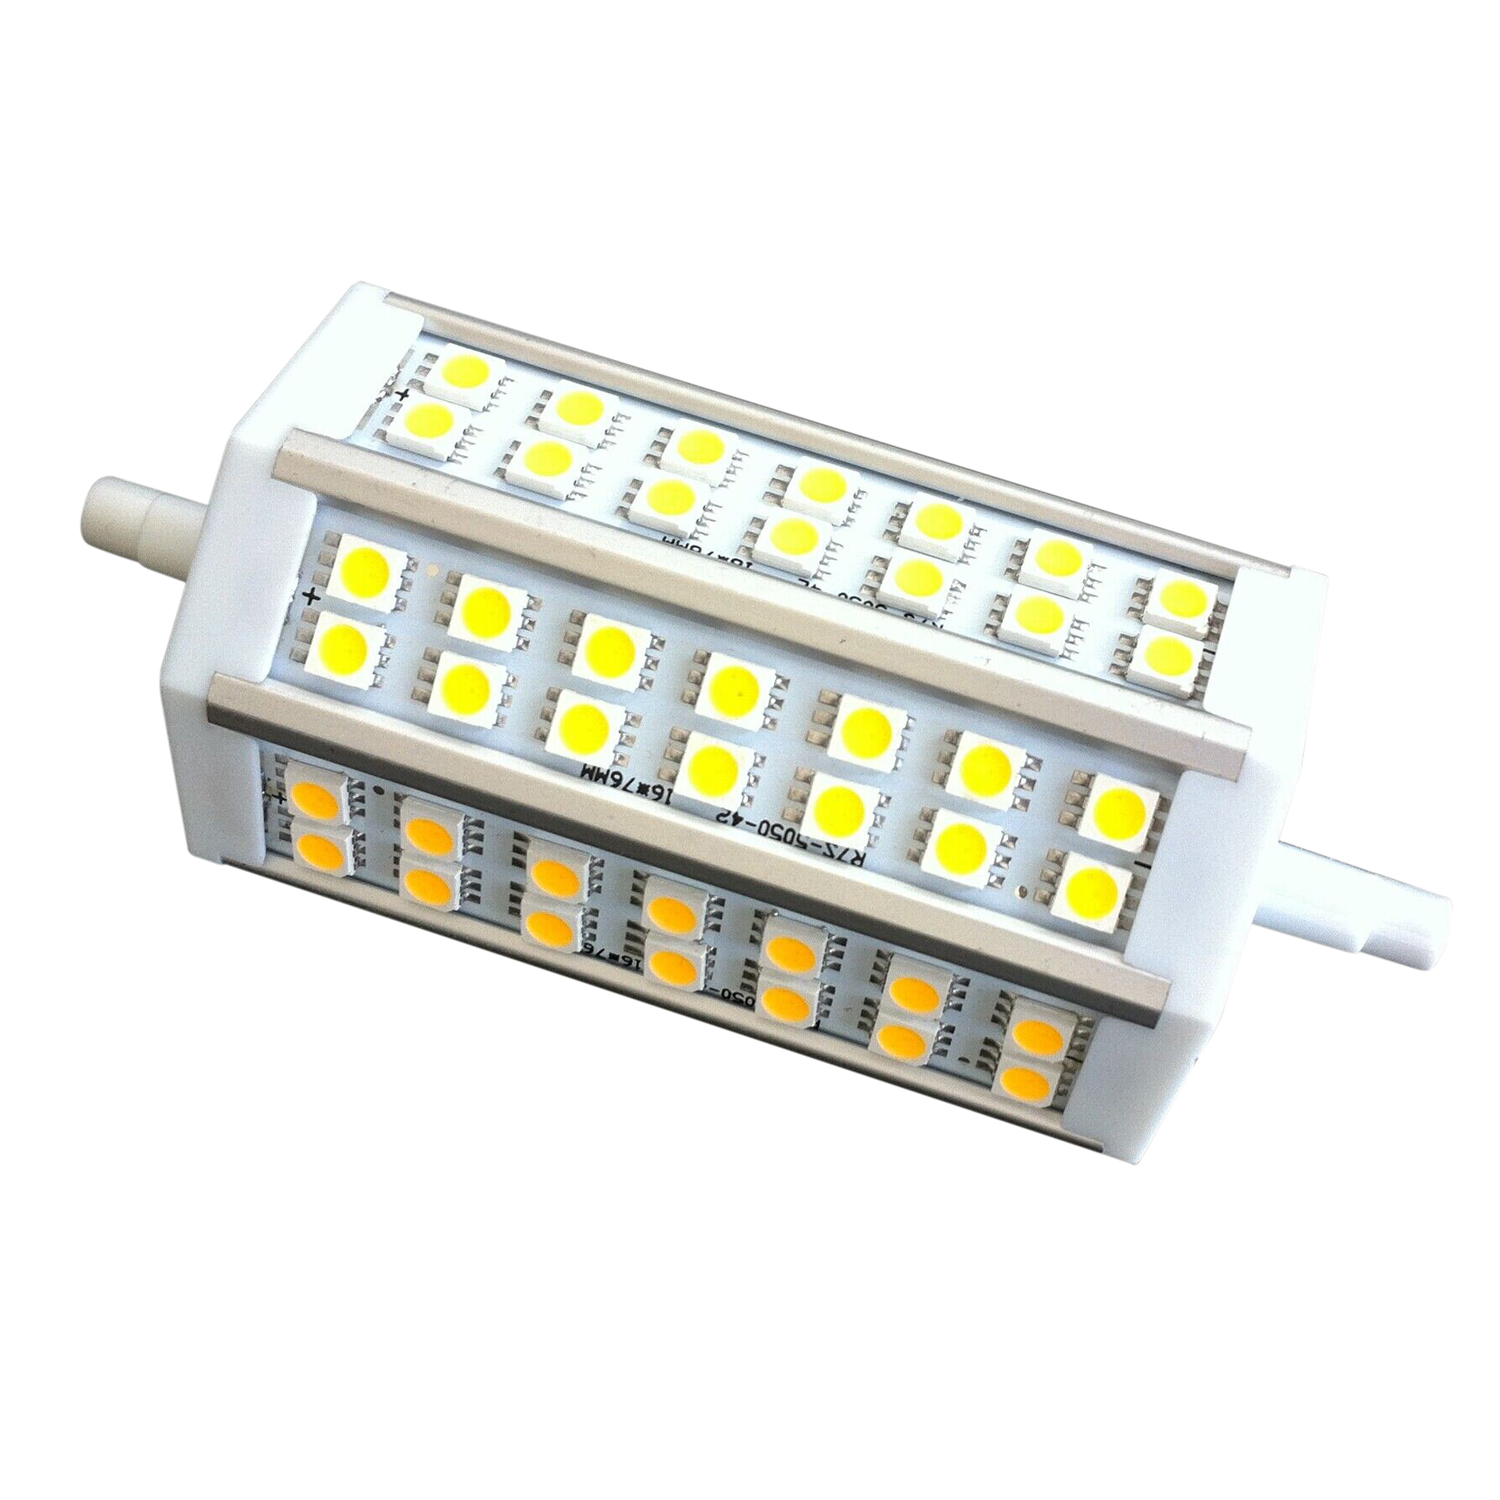 R7s 118 mm 42 led lamp bulb spot dimmable warm white for R7s 150w led